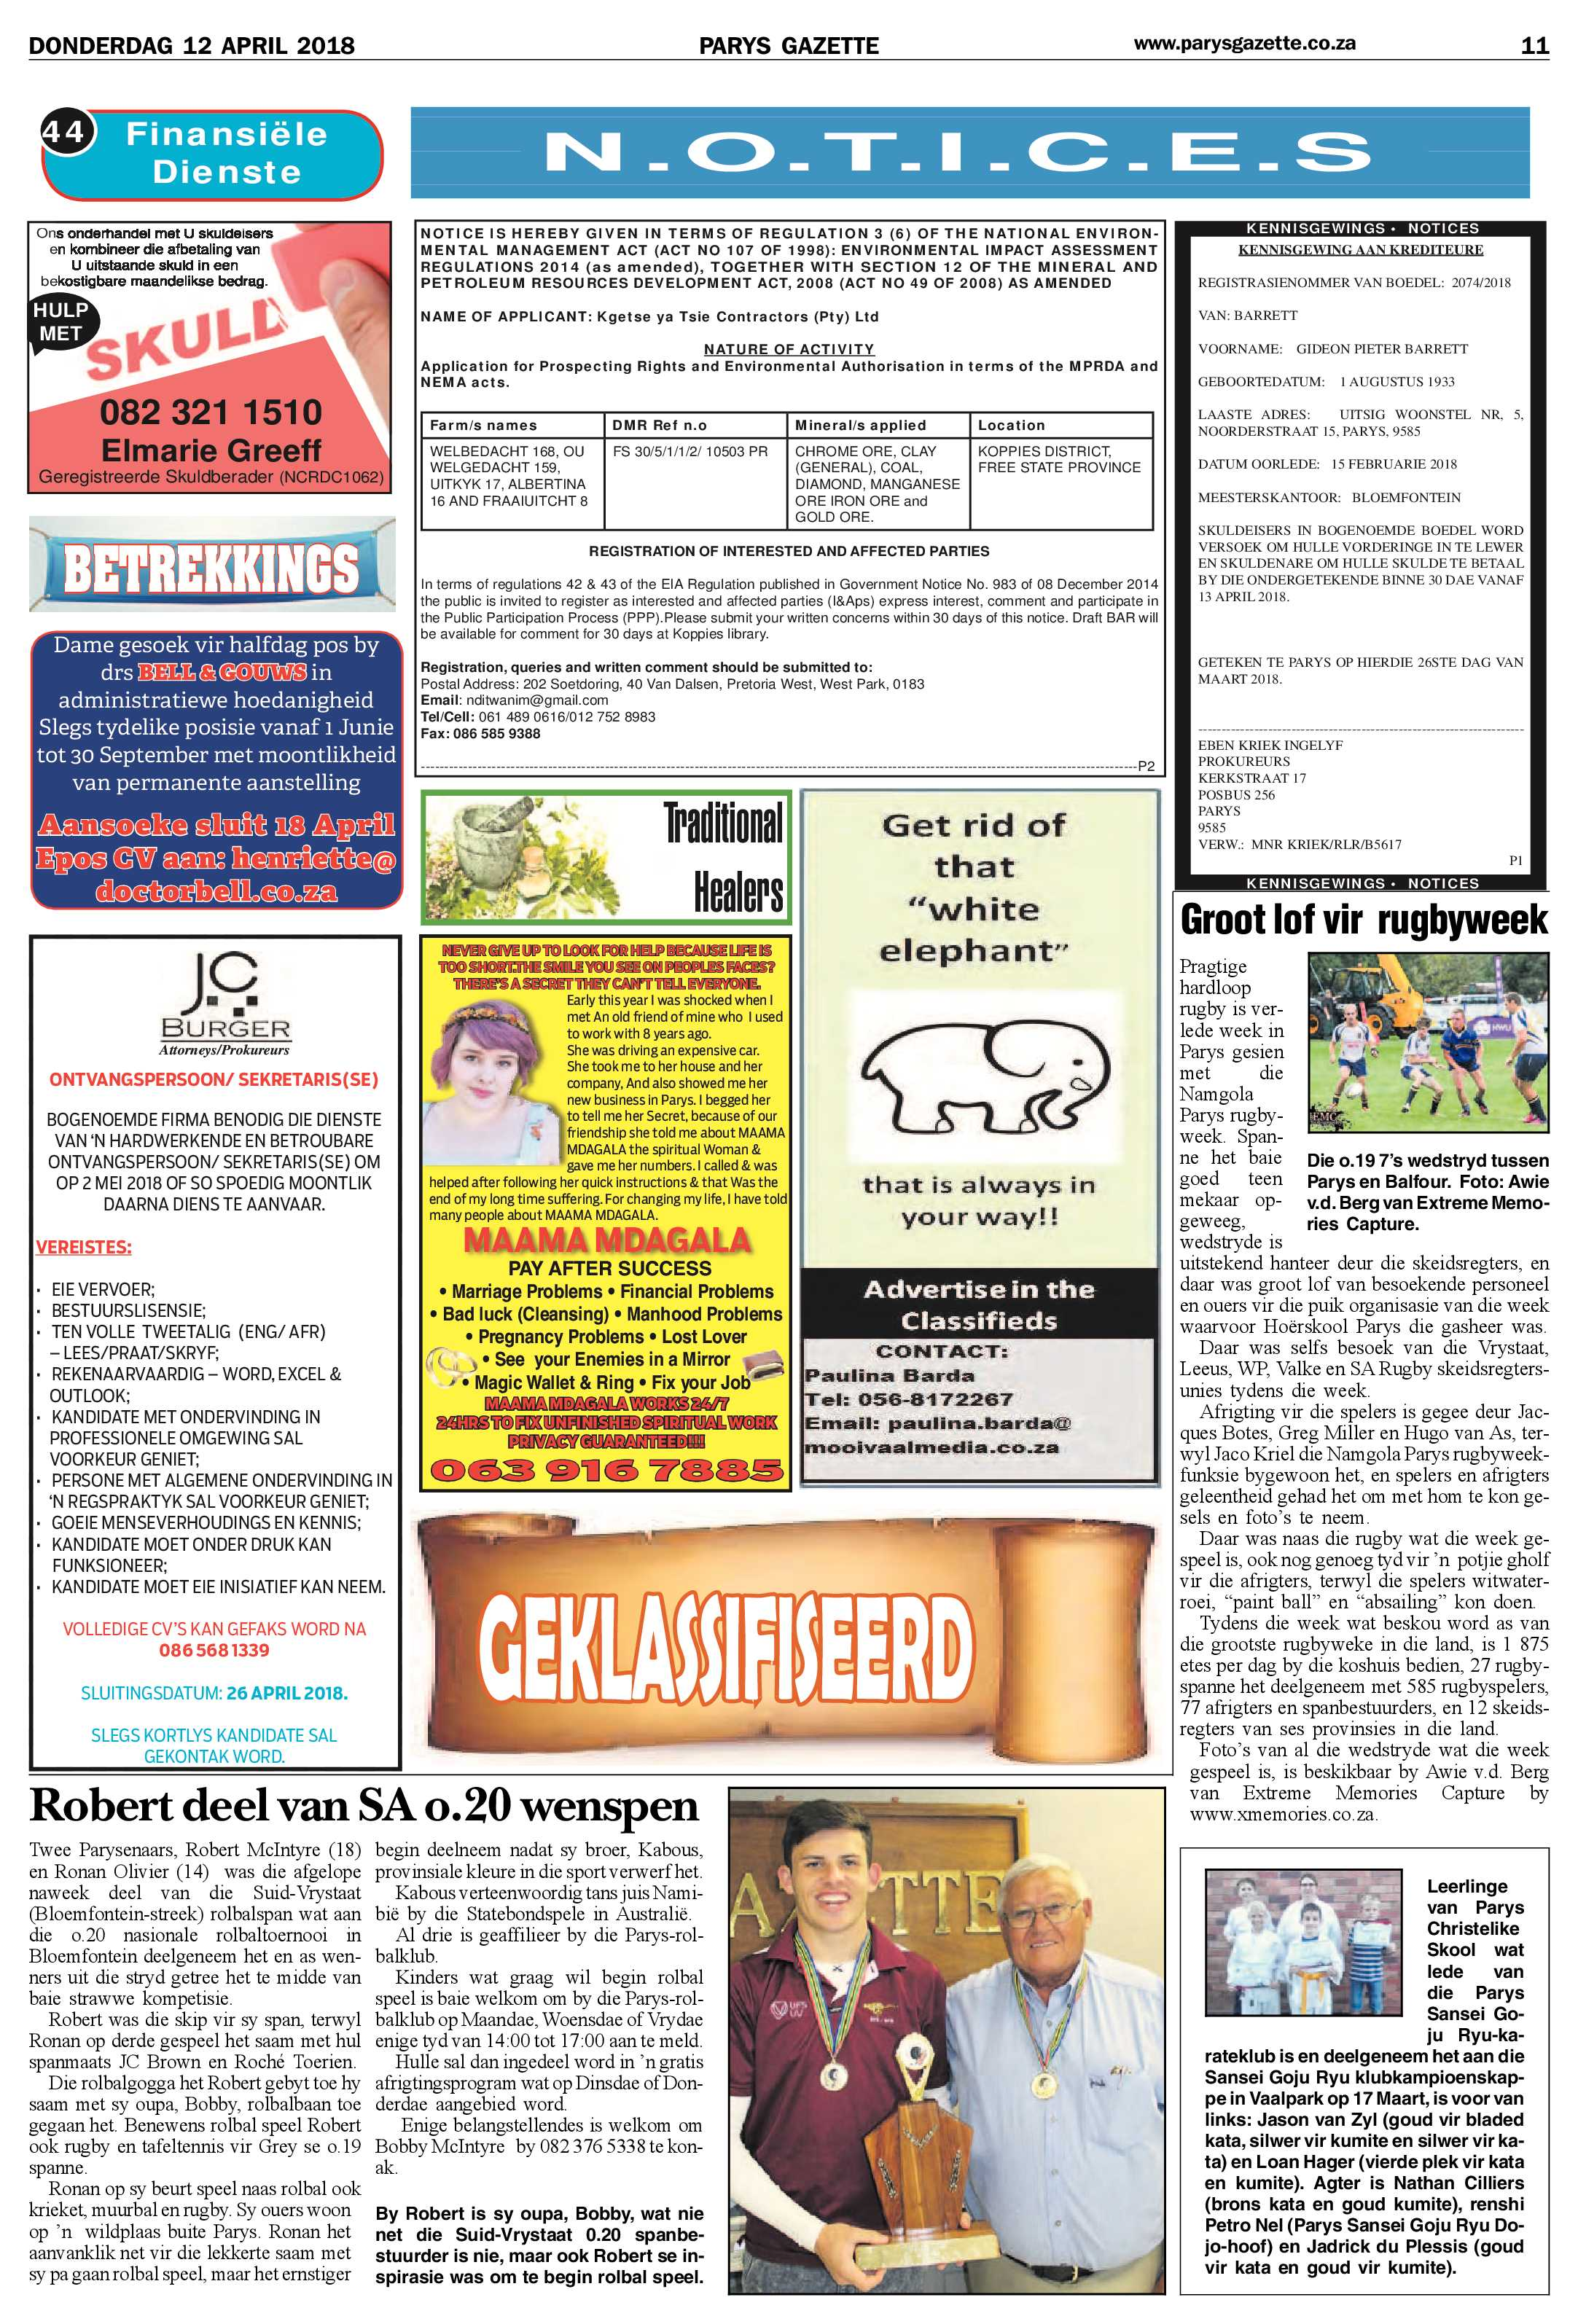 12-april-2018-epapers-page-11